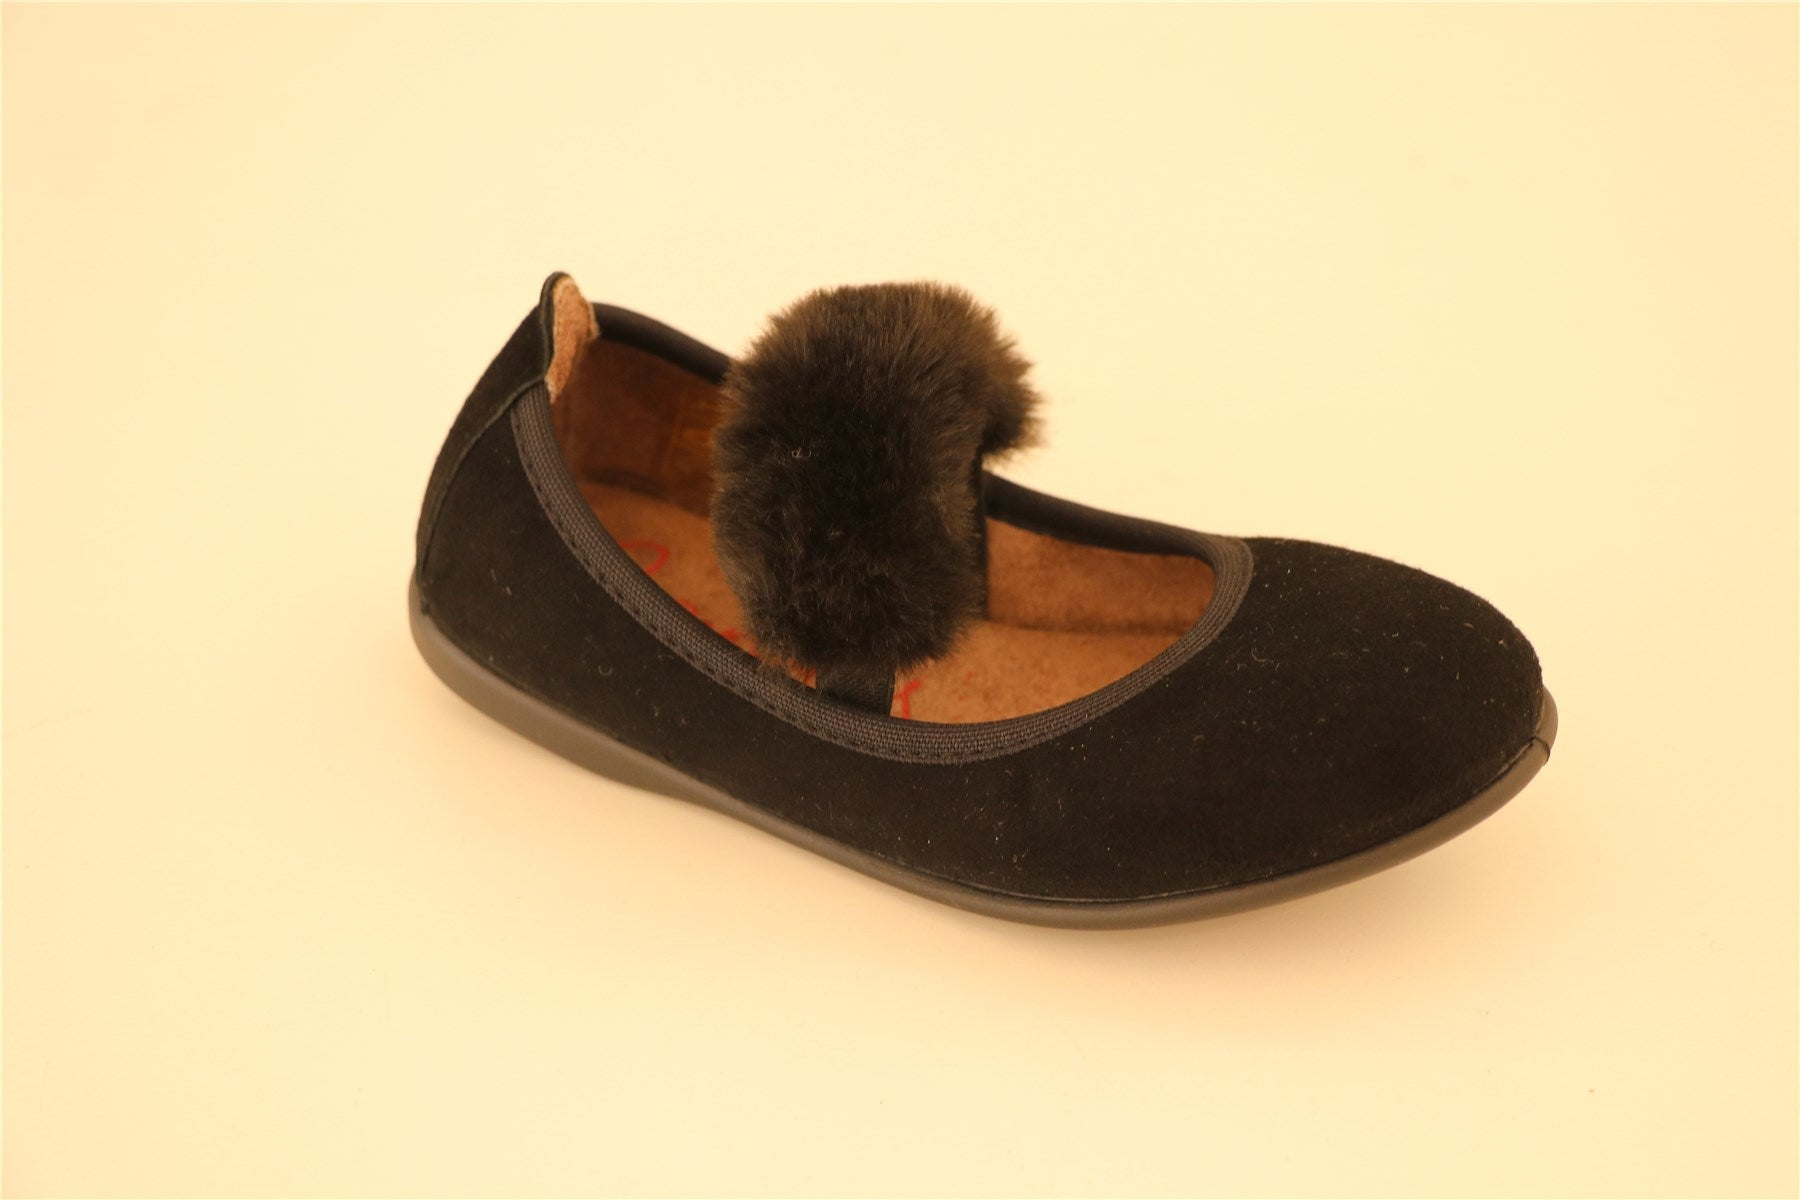 Black Suede With Fur Strap Shoes